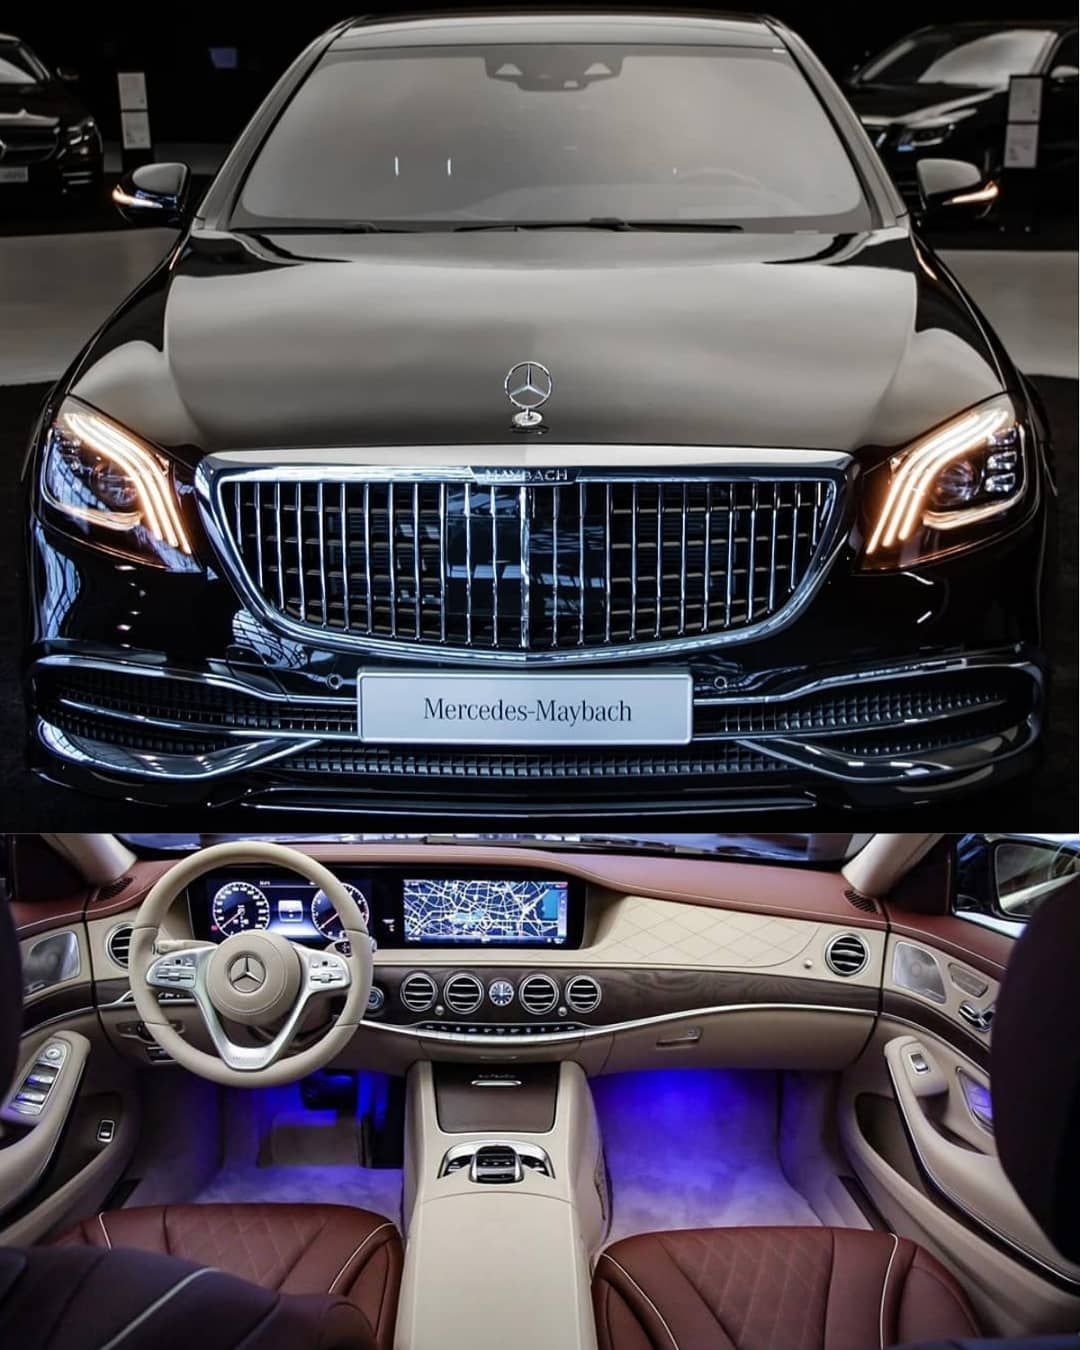 No Doubt The Best Full Size Modern Luxury Sedan In The World Mercedes Maybach S Class Mercedes Benz Maybach Maybach Mercedes Maybach